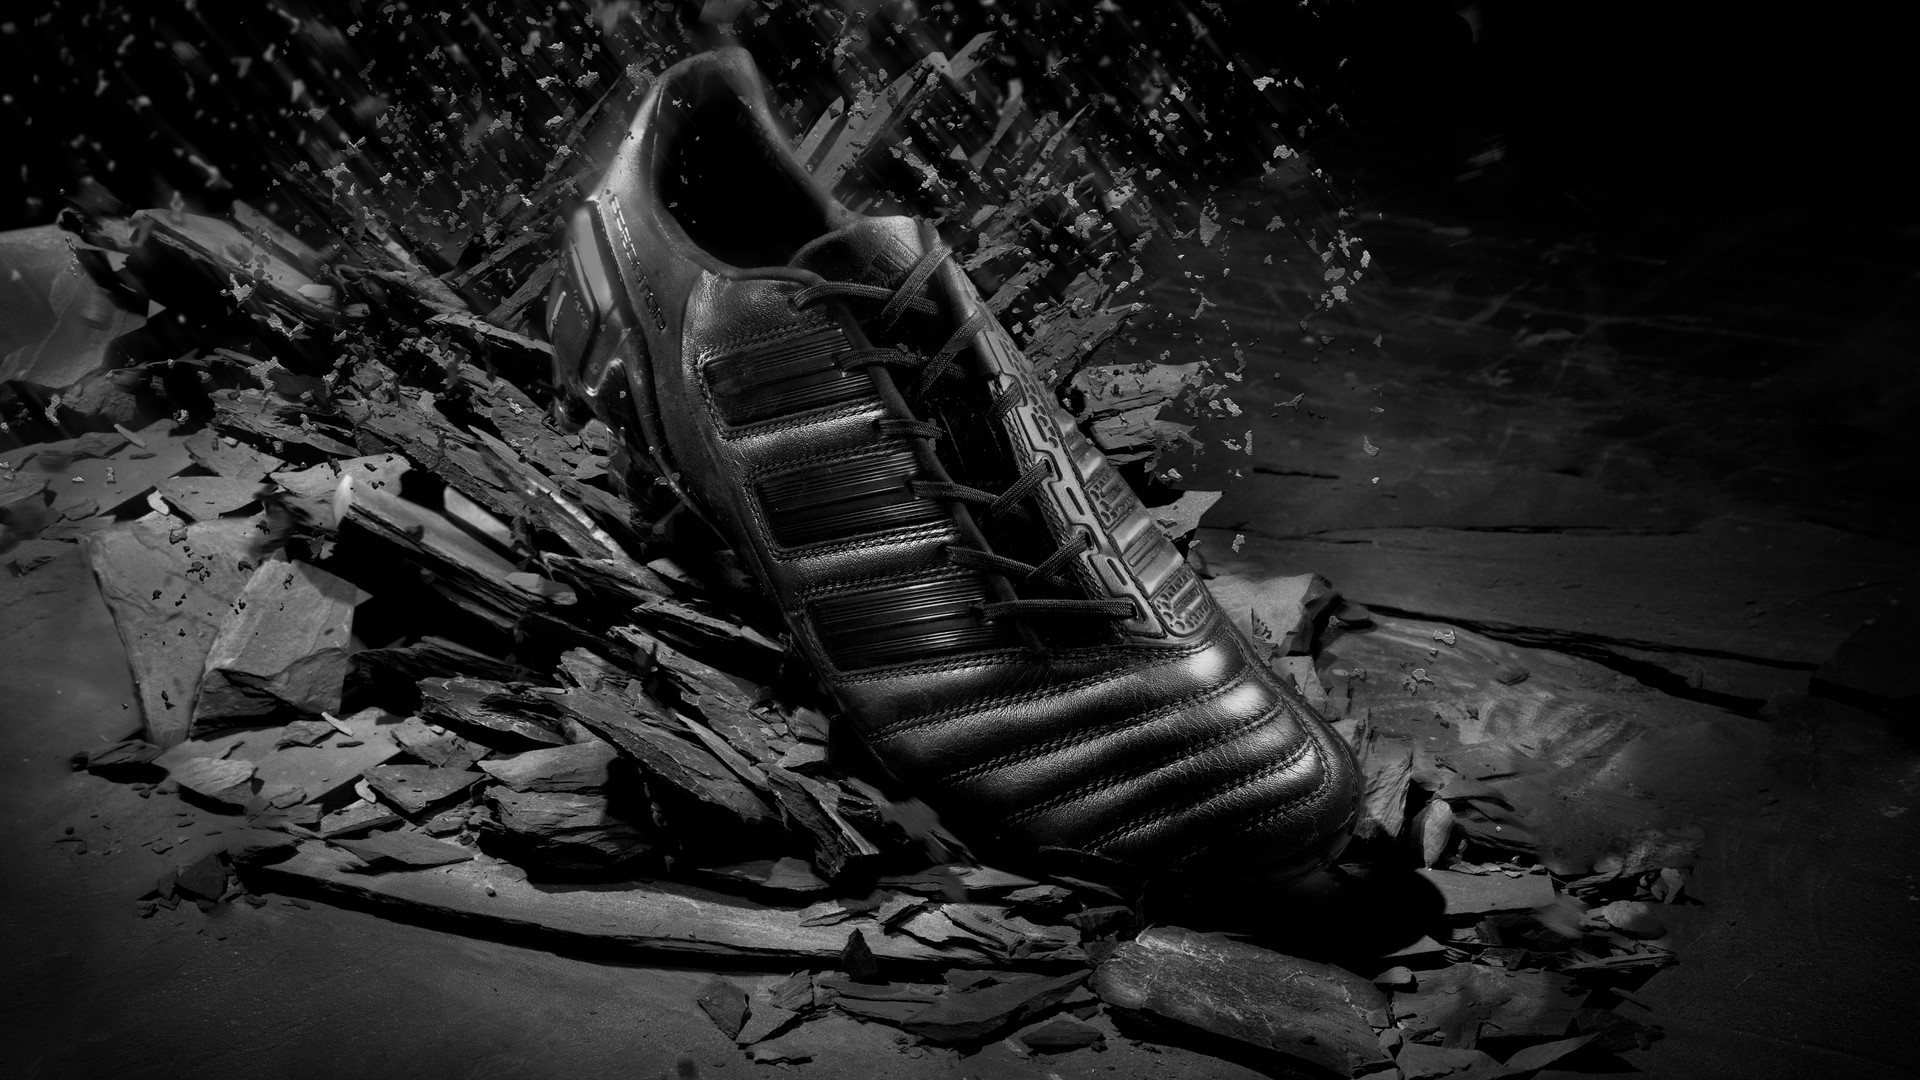 predator_blackout_adidas copy.jpg